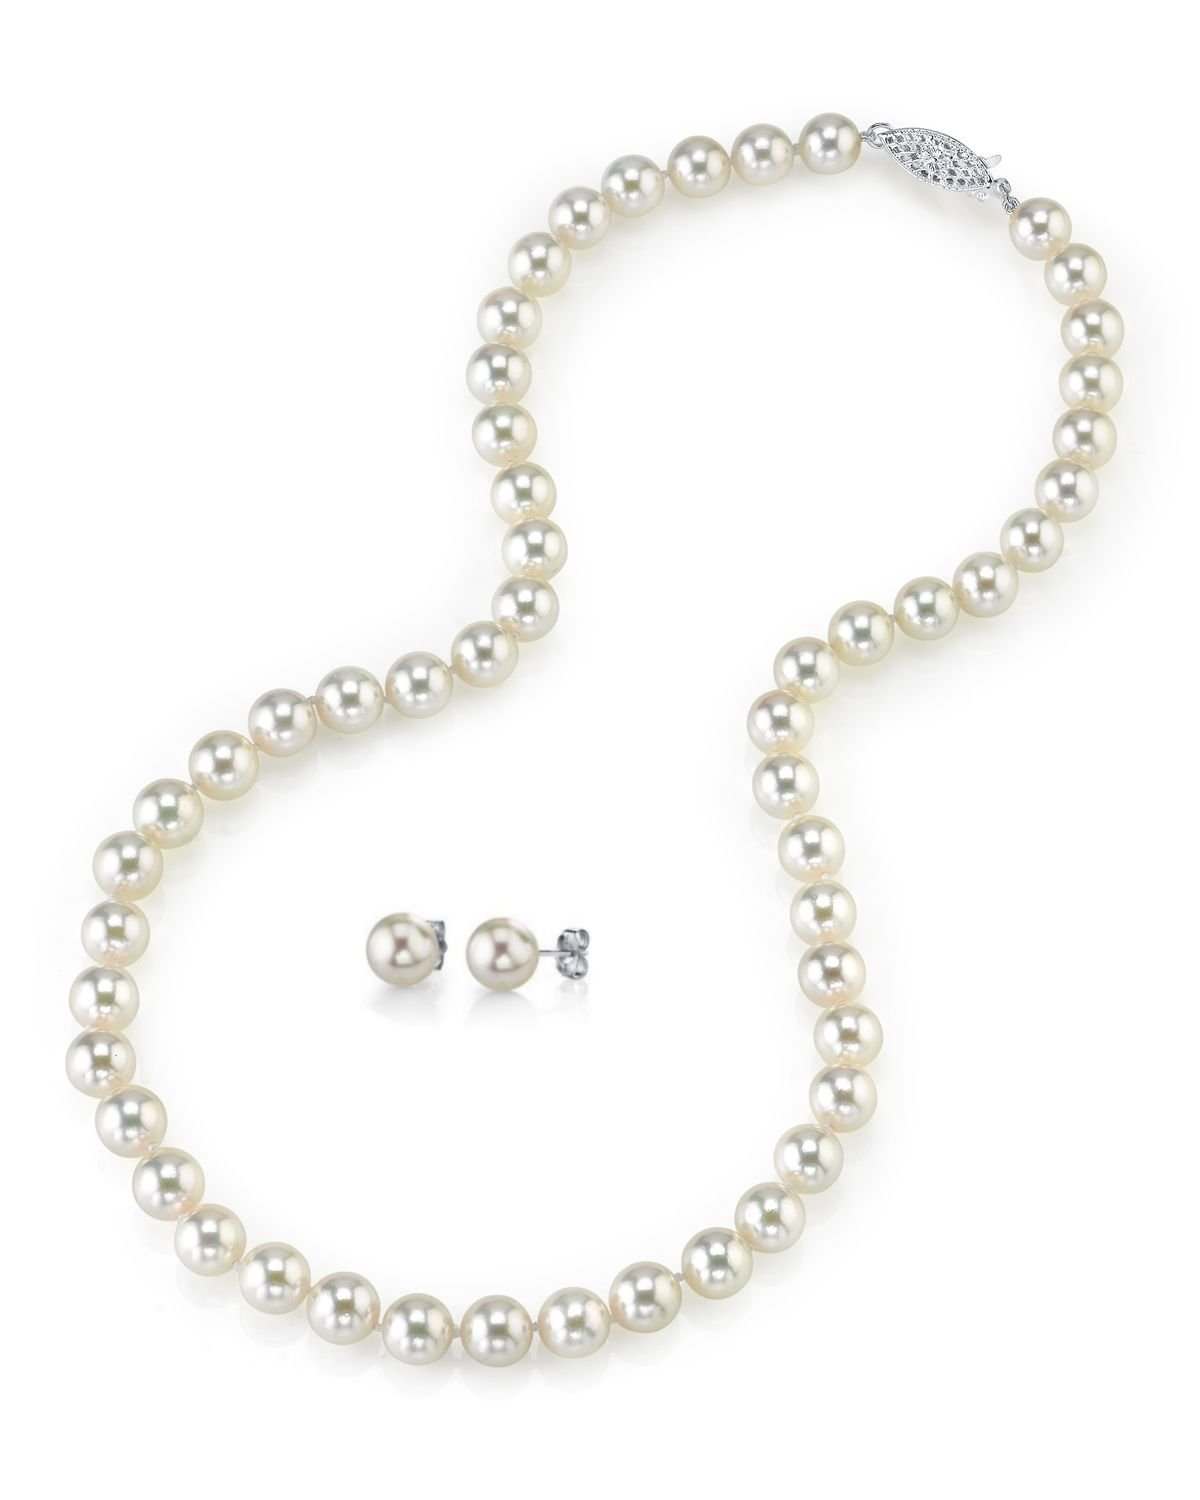 6.5-7.0mm Japanese Akoya Pearl Necklace & Earrings